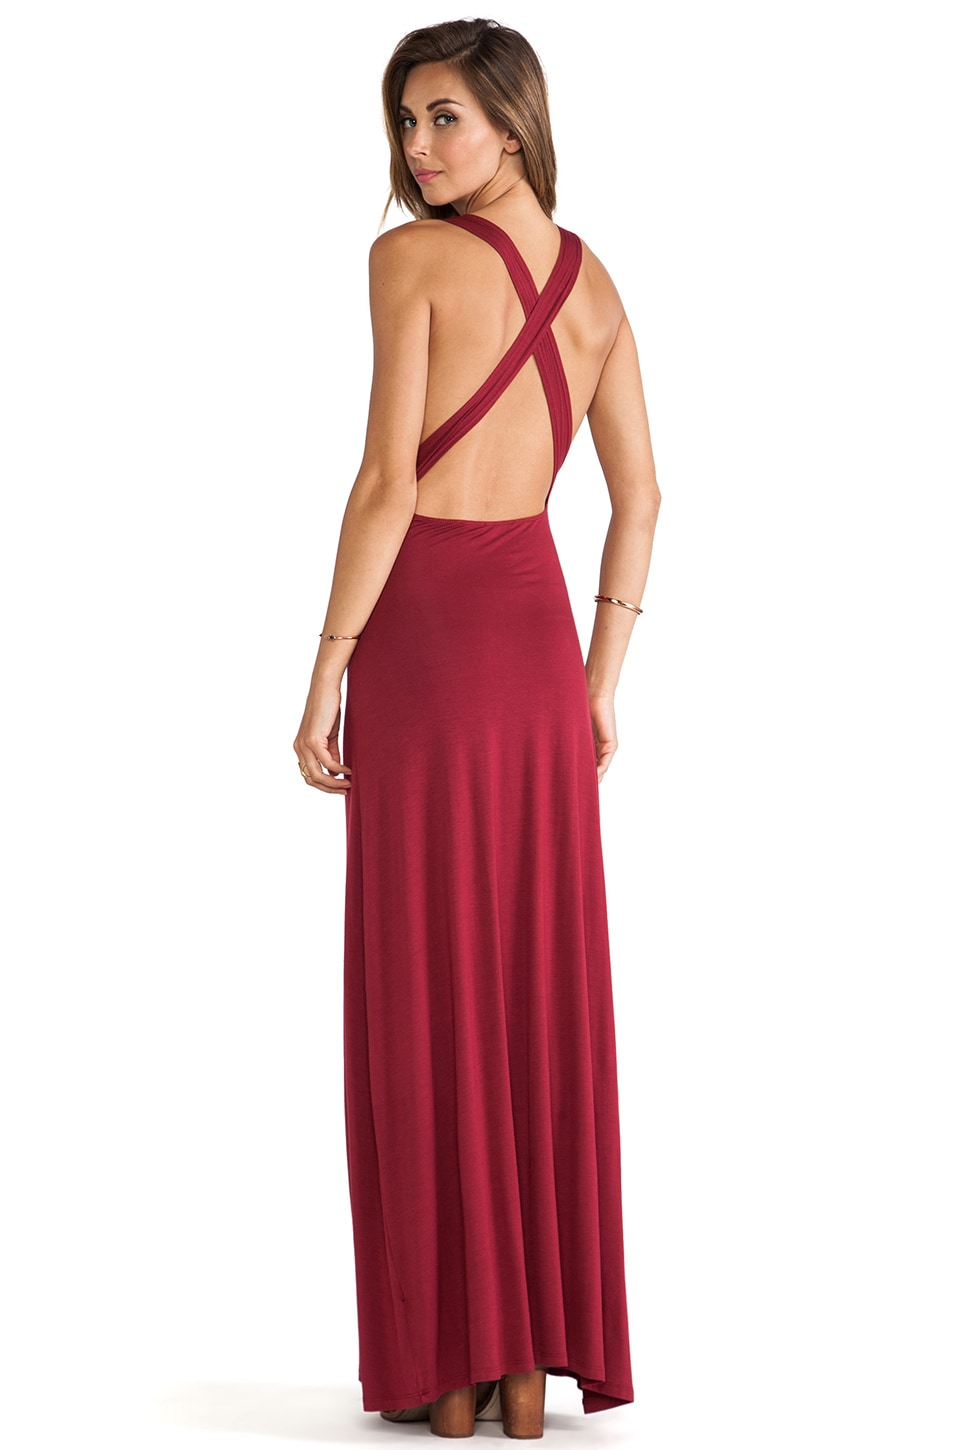 Lovers + Friends Feeling Fine Maxi Dress in Scooter